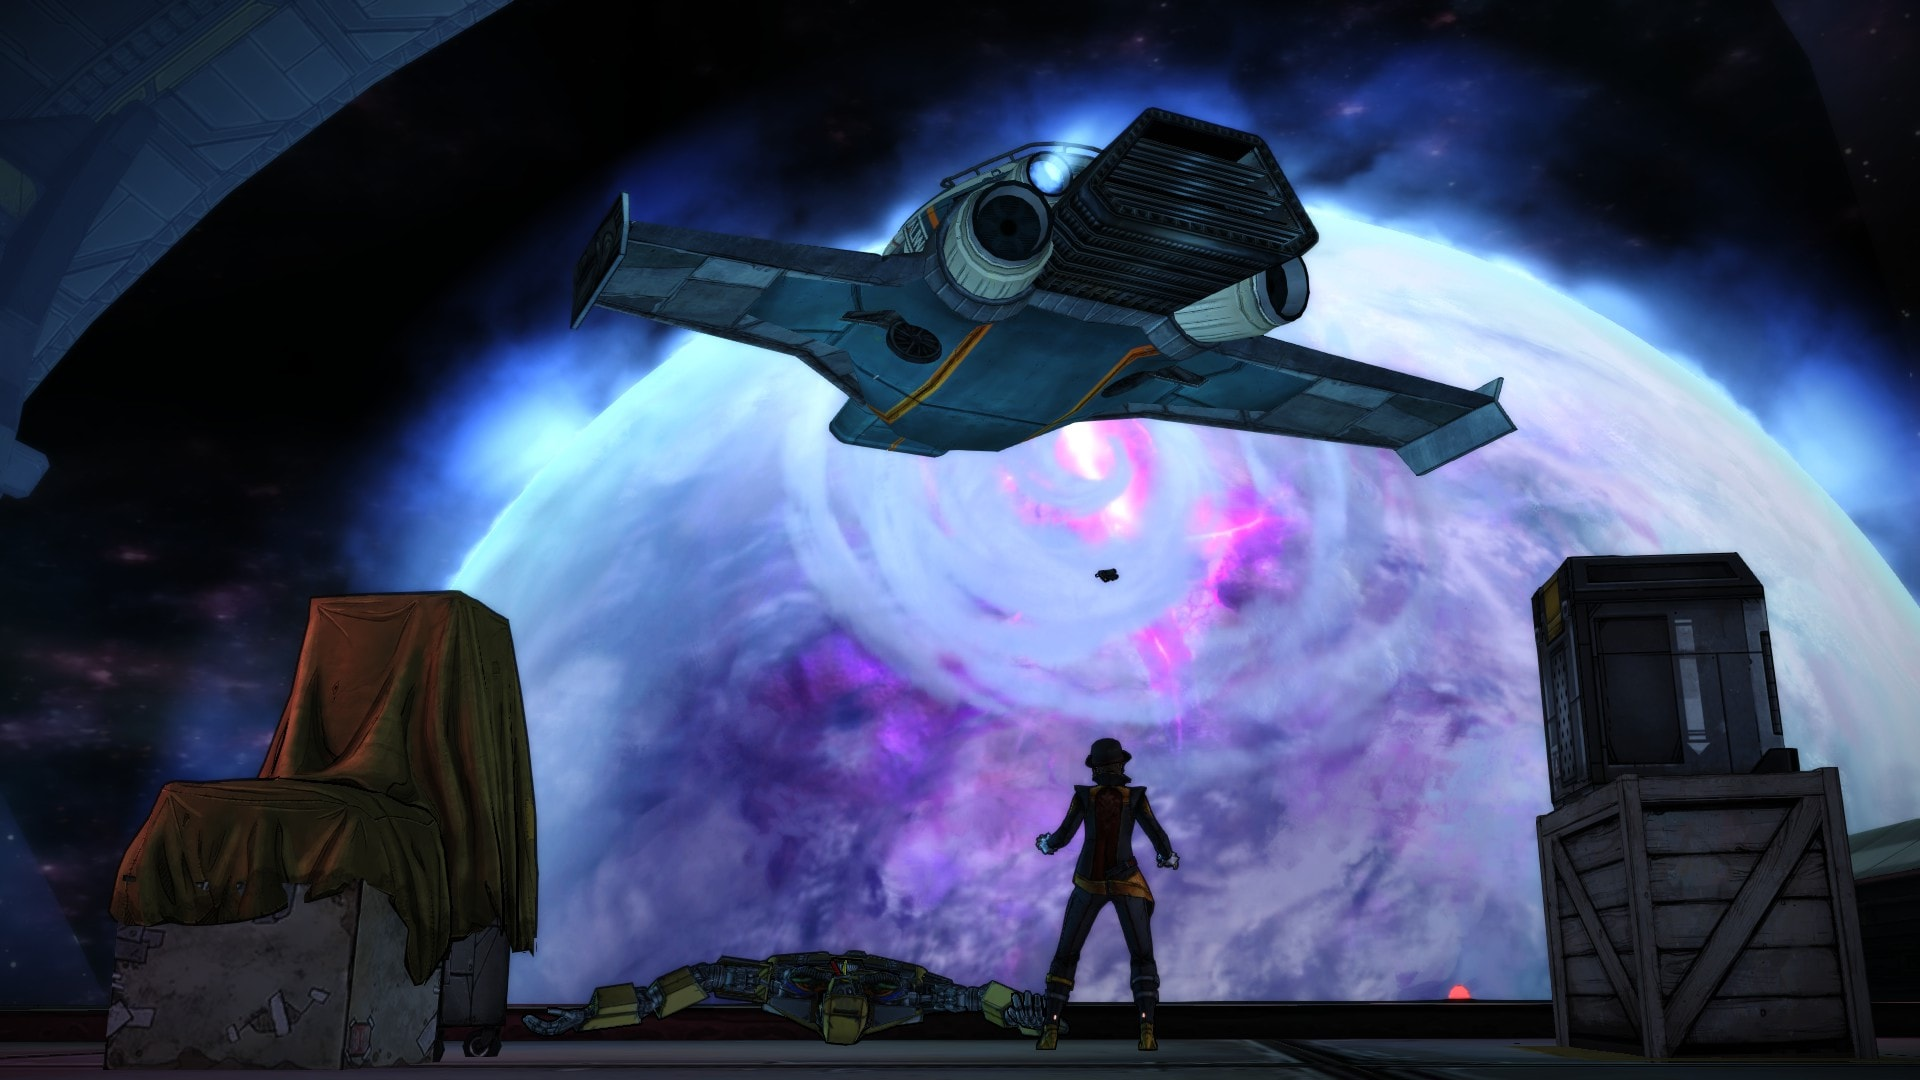 Tales from the Borderlands: Episode 5 - The Vault of the Traveler Widescreen for desktop